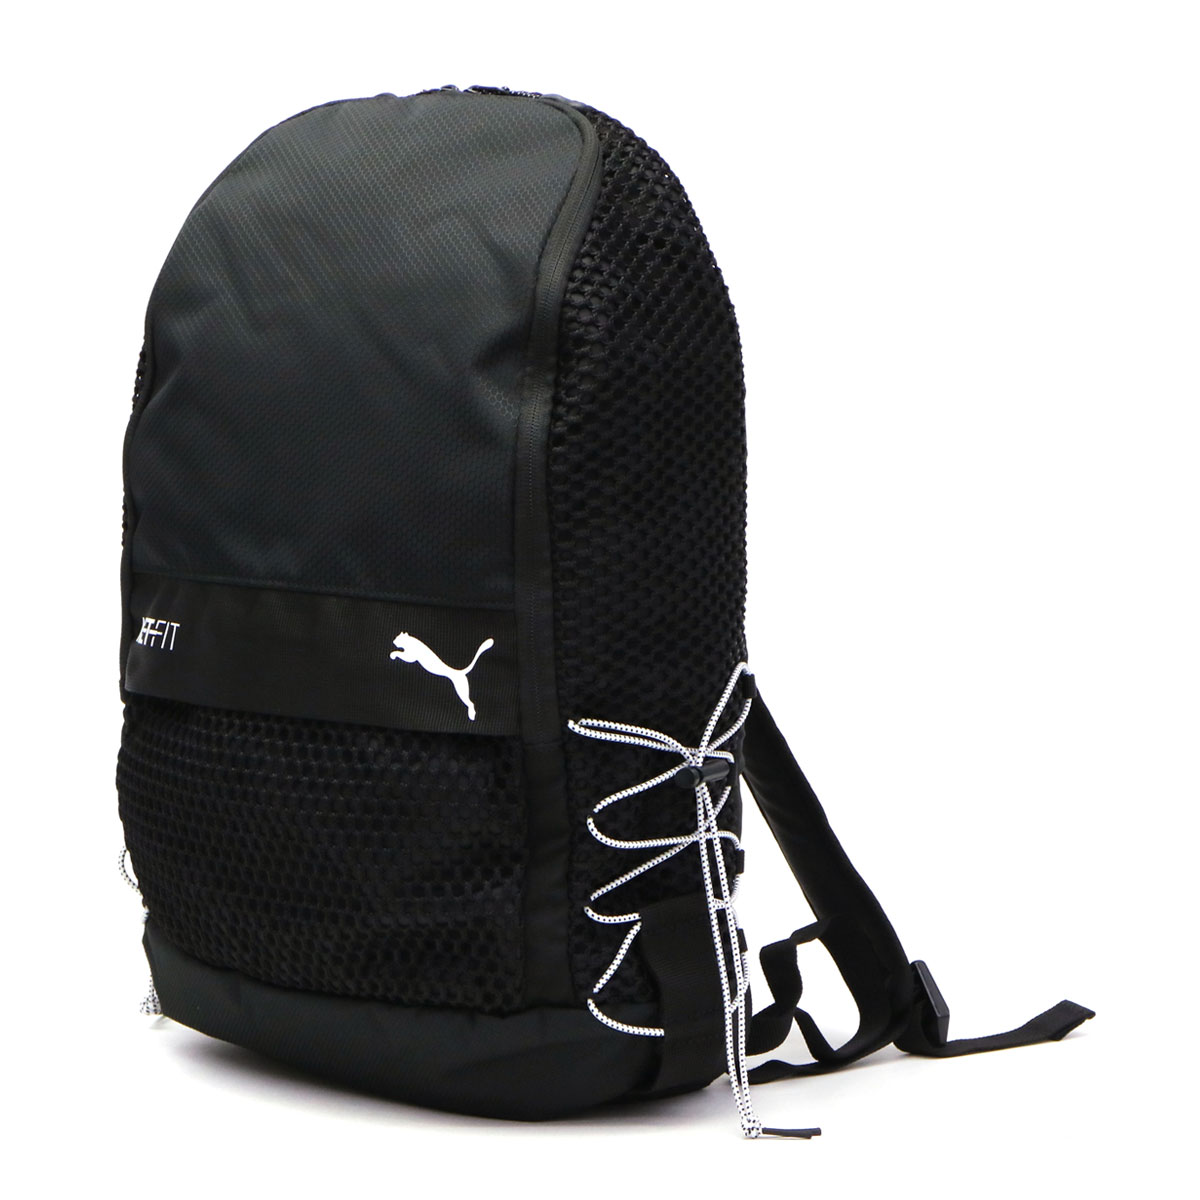 177466842b4 [SALE 40% OFF] PUMA rucksack backpack mens womens Netfit daypack A4  Athletic commuting to school 075446